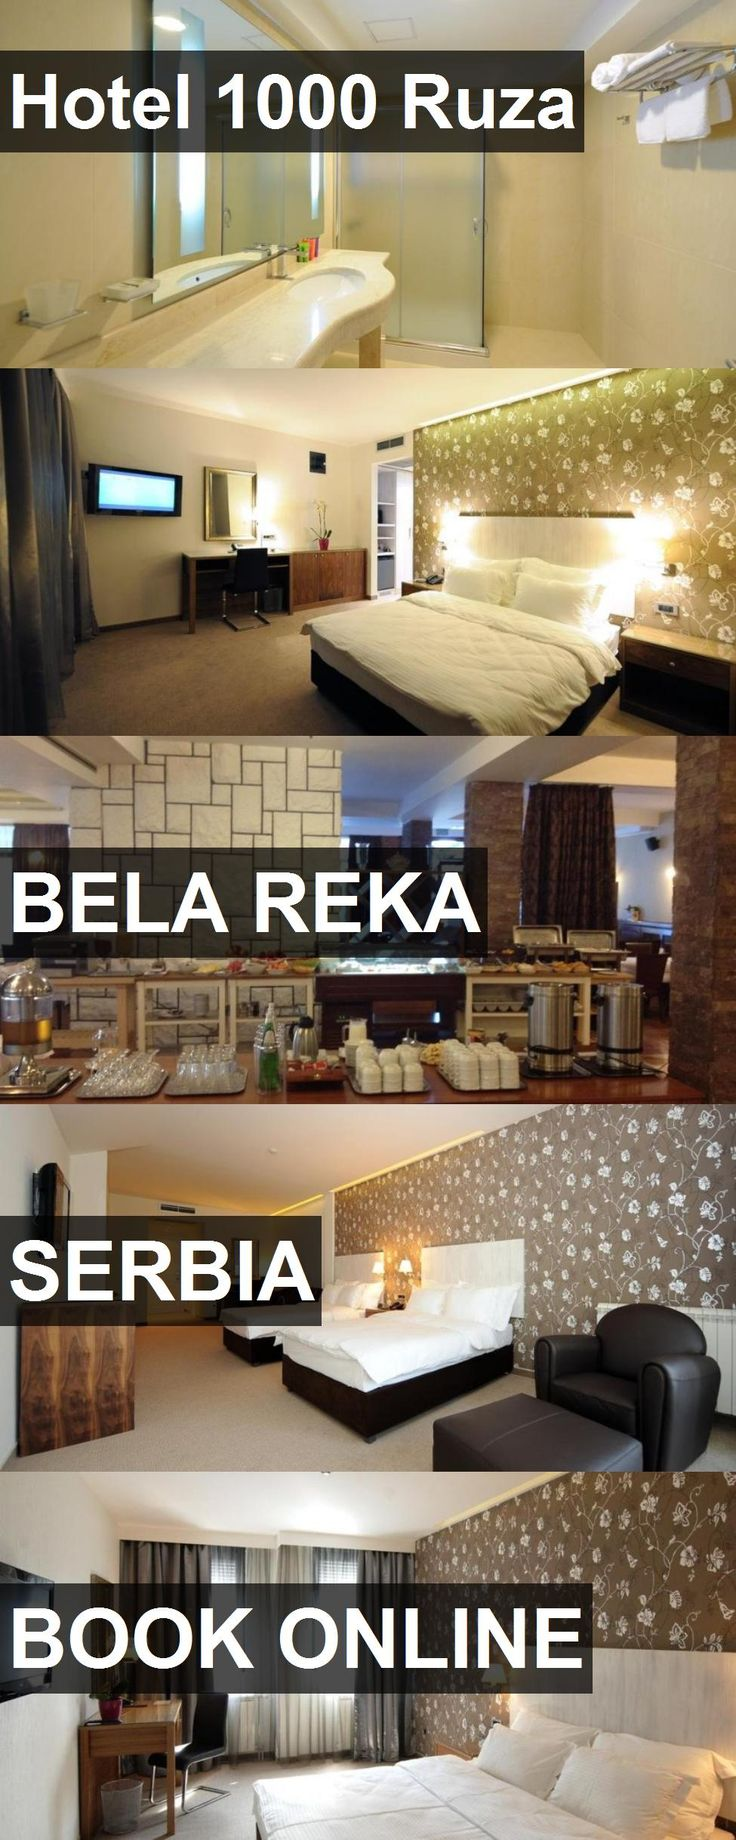 Hotel Hotel 1000 Ruza in Bela Reka, Serbia. For more information, photos, reviews and best prices please follow the link. #Serbia #BelaReka #Hotel1000Ruza #hotel #travel #vacation